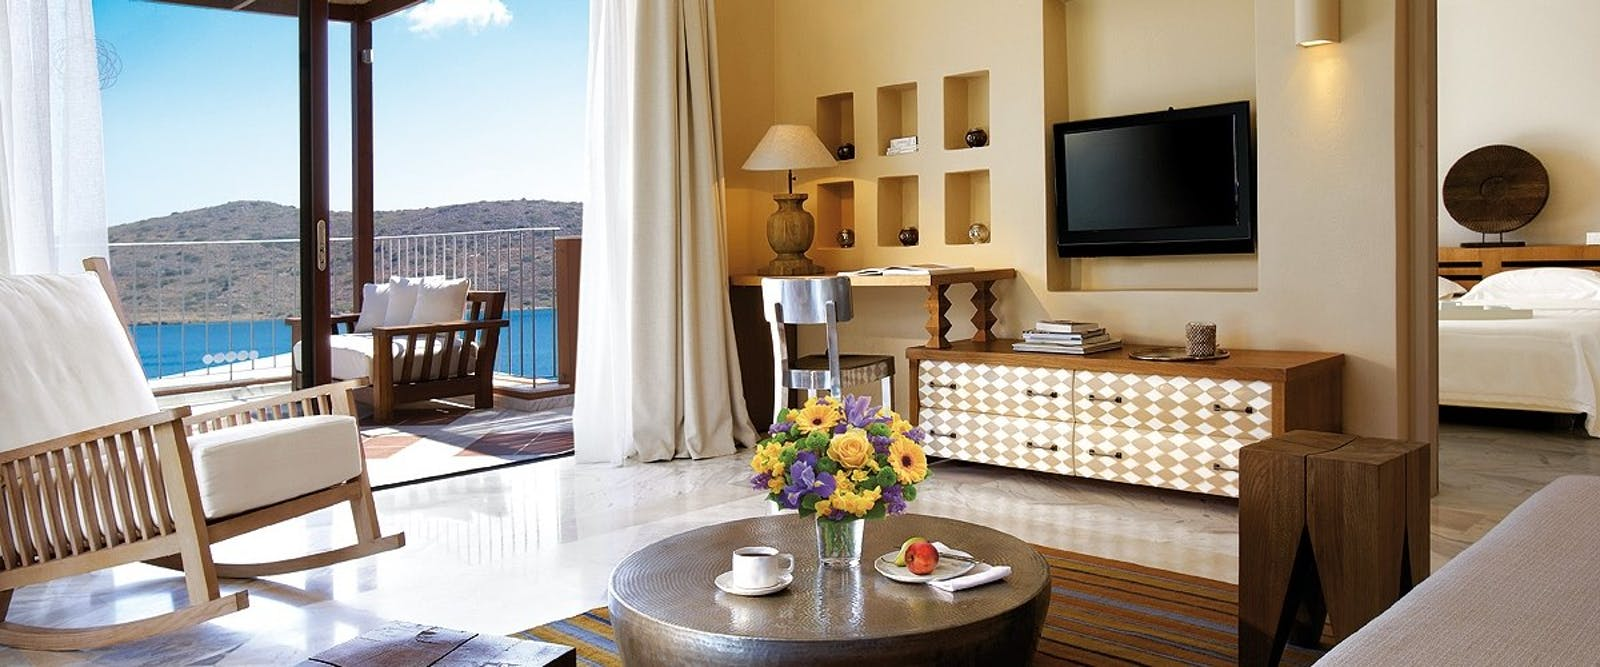 Bedroom Interior at Domes of Elounda, Autograph Collection, Crete, Greece